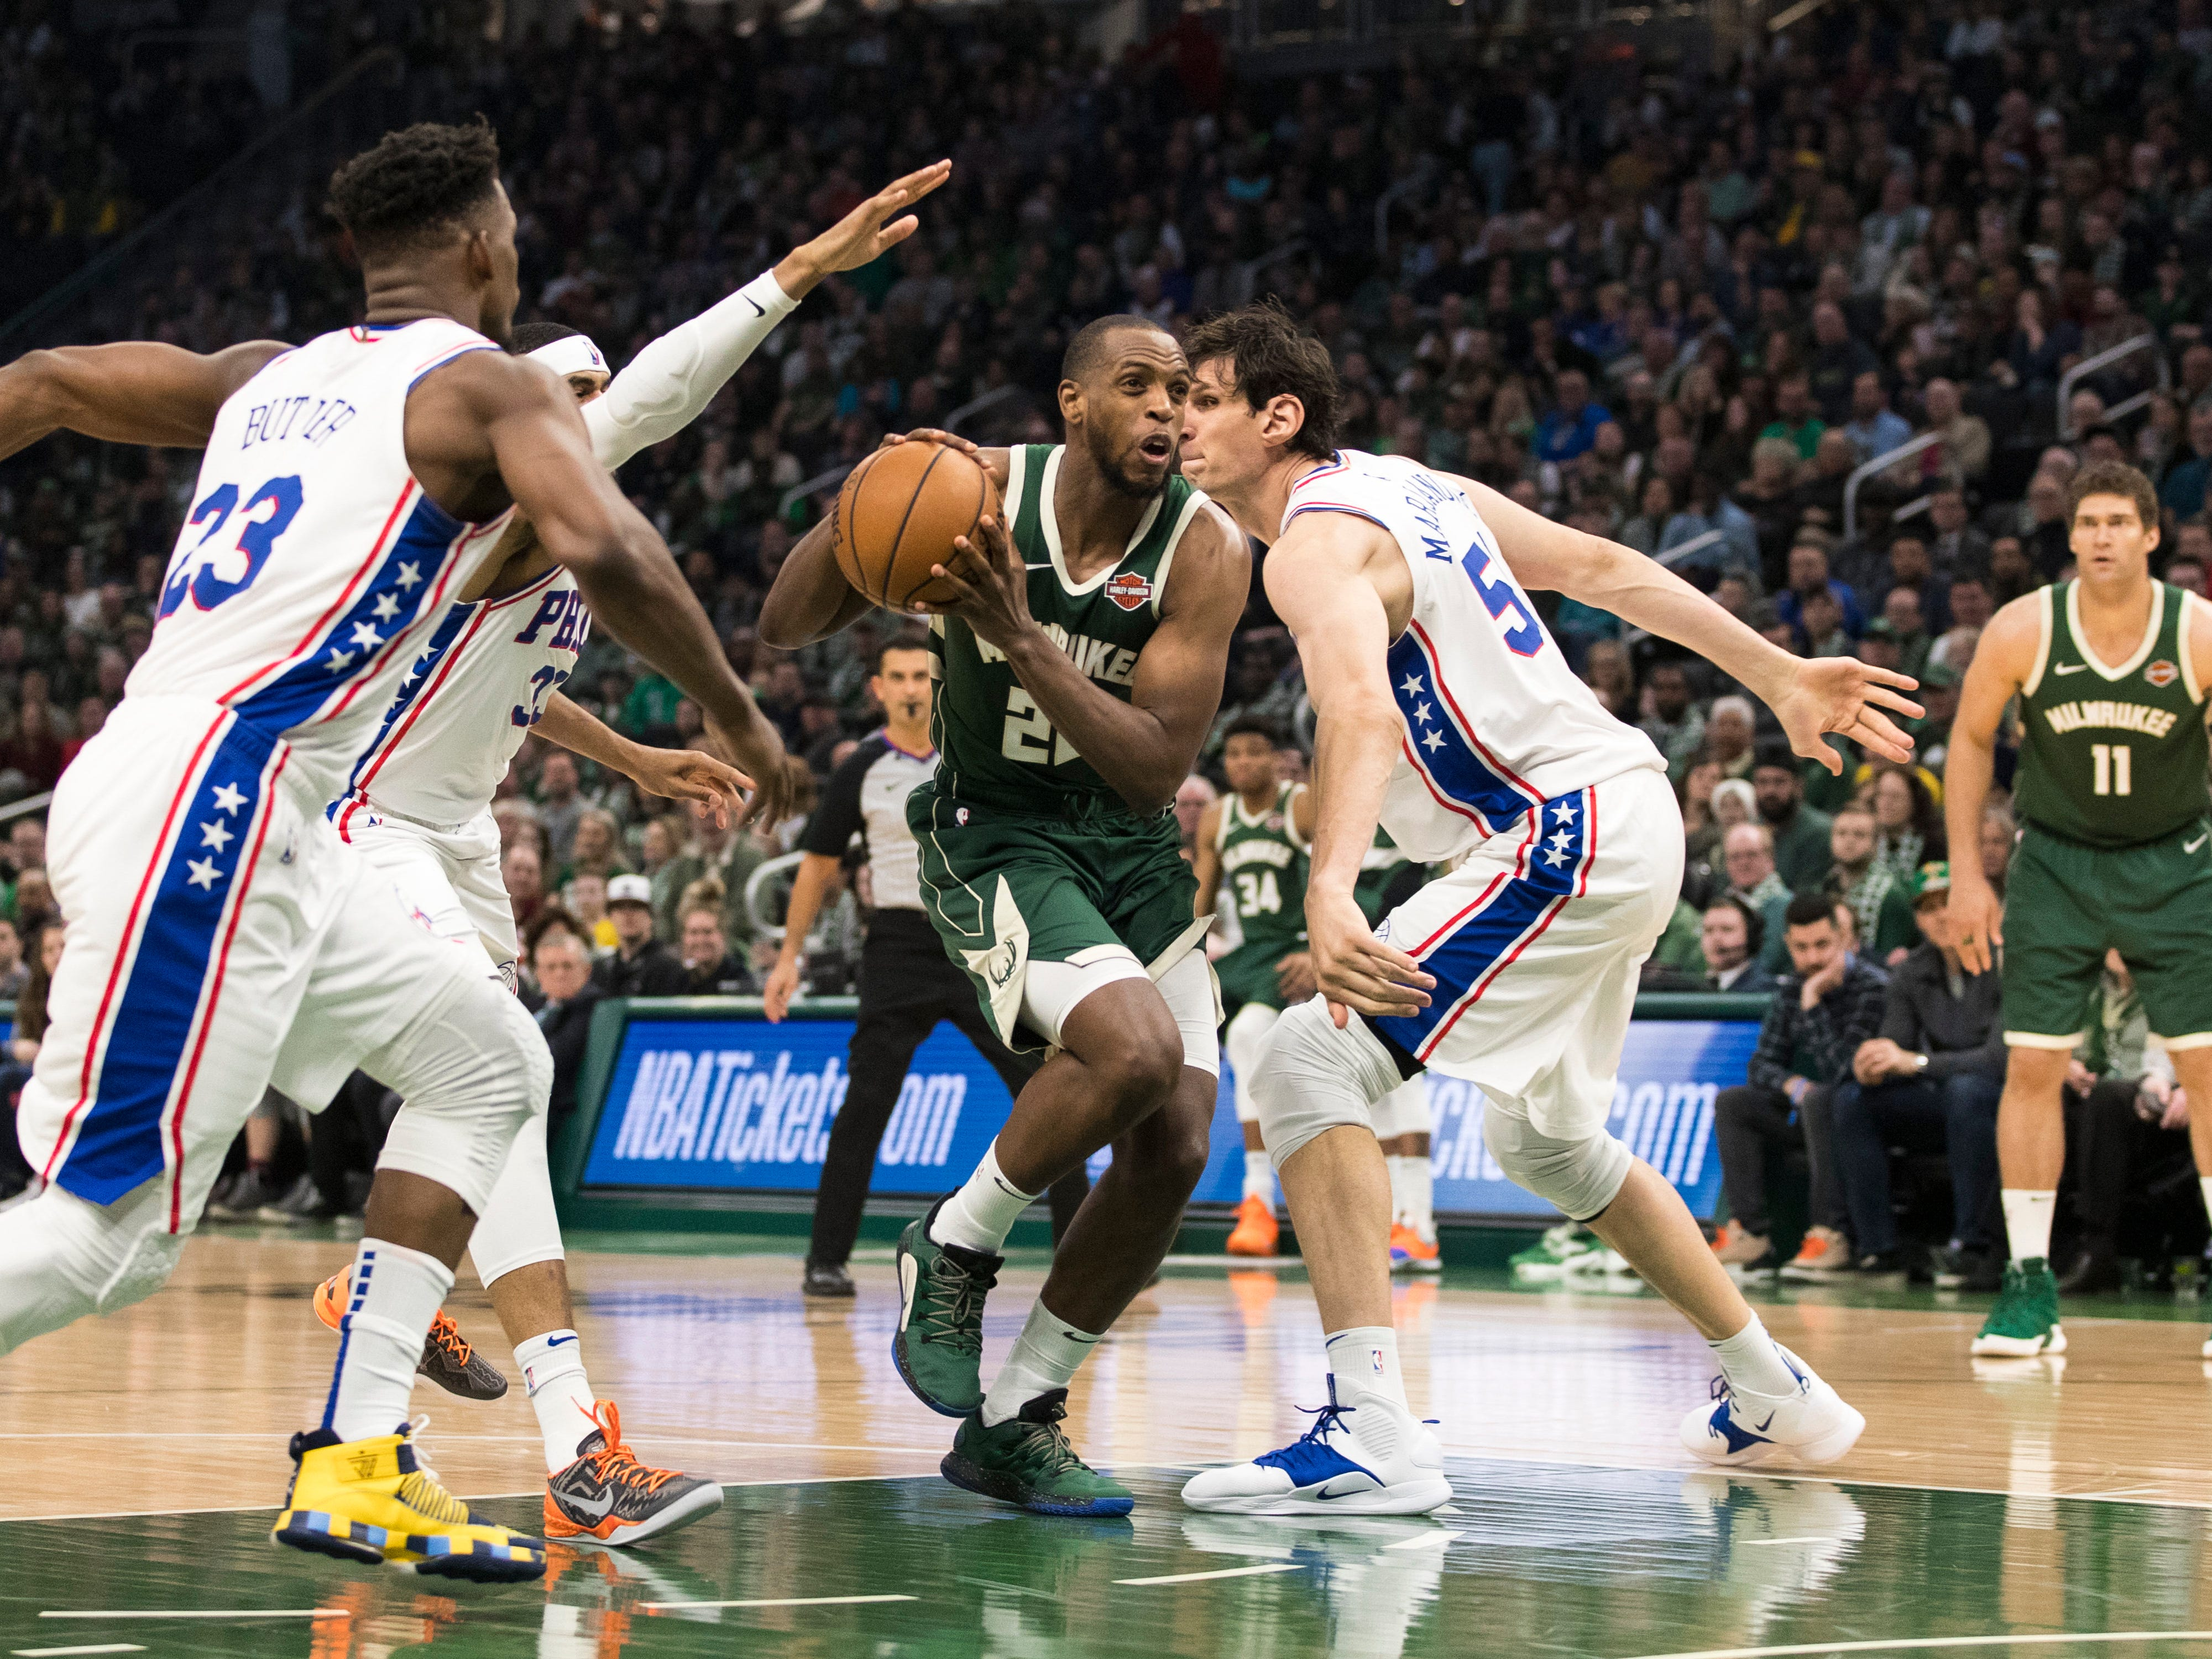 Bucks forward Khris Middleton knifes through a trio of Sixers defenders and down the lane during the second quarter.